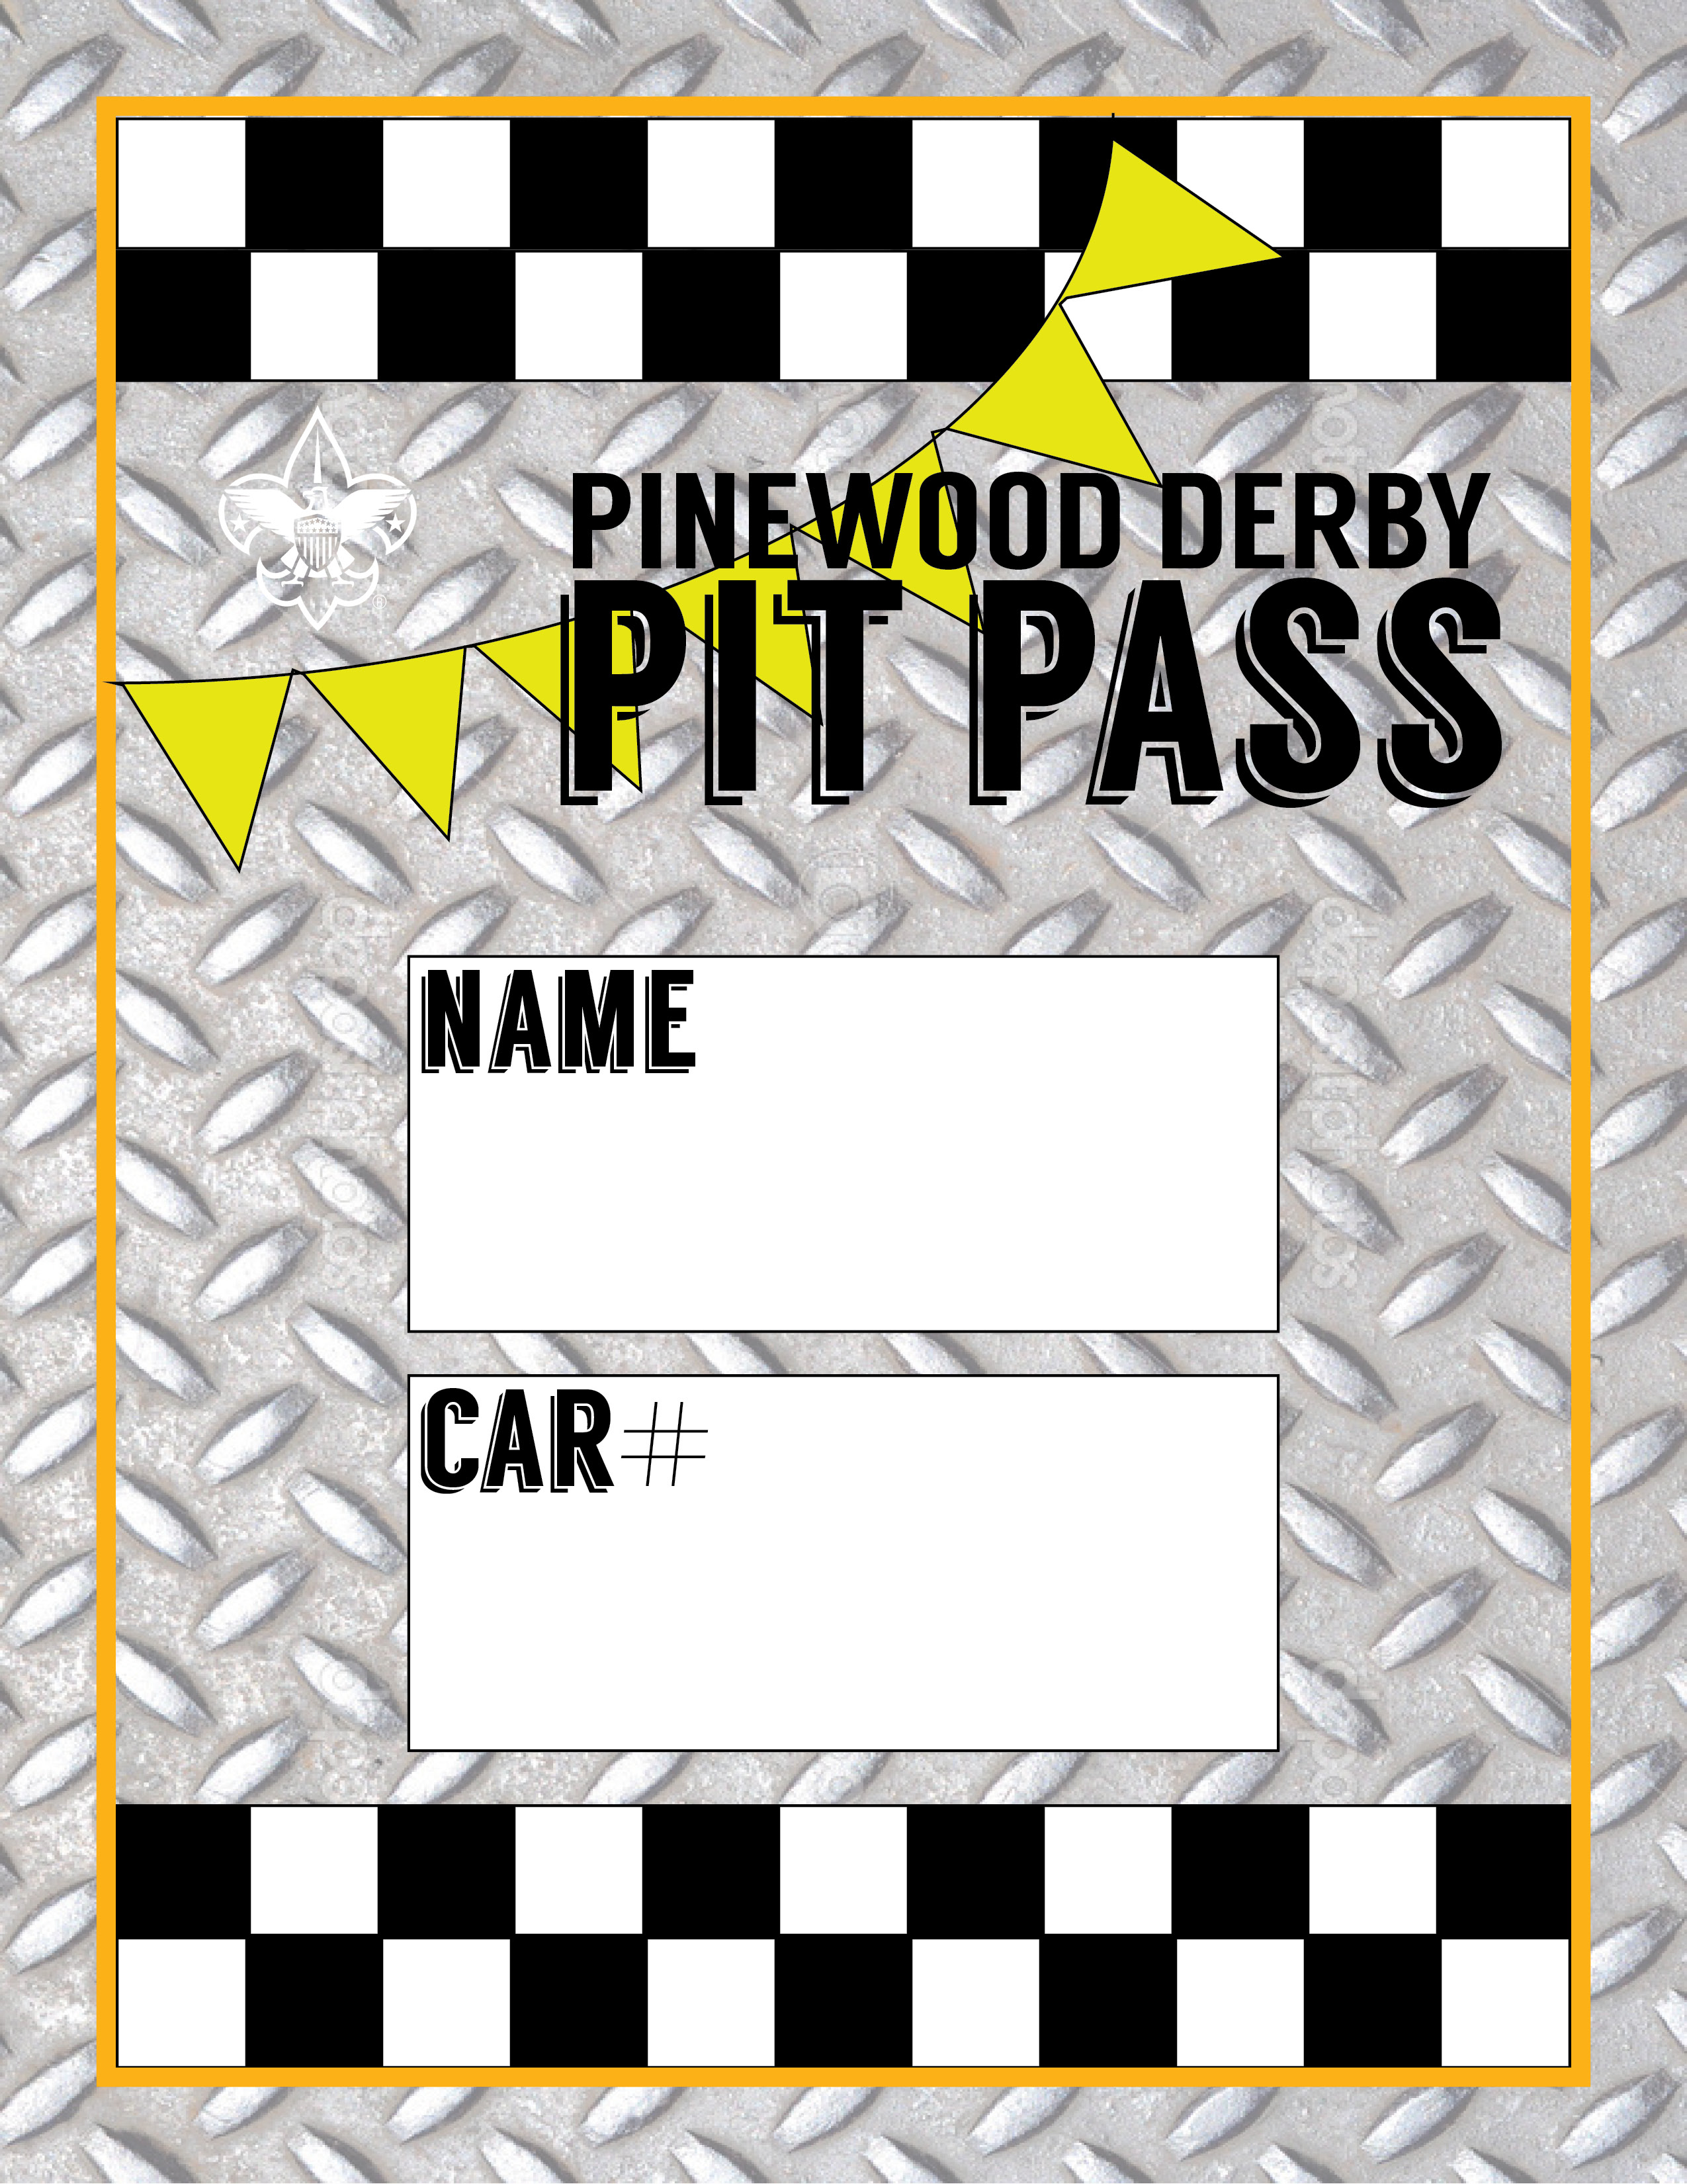 Pinewood Derby Pit Passes FREE Printable Mommysavers